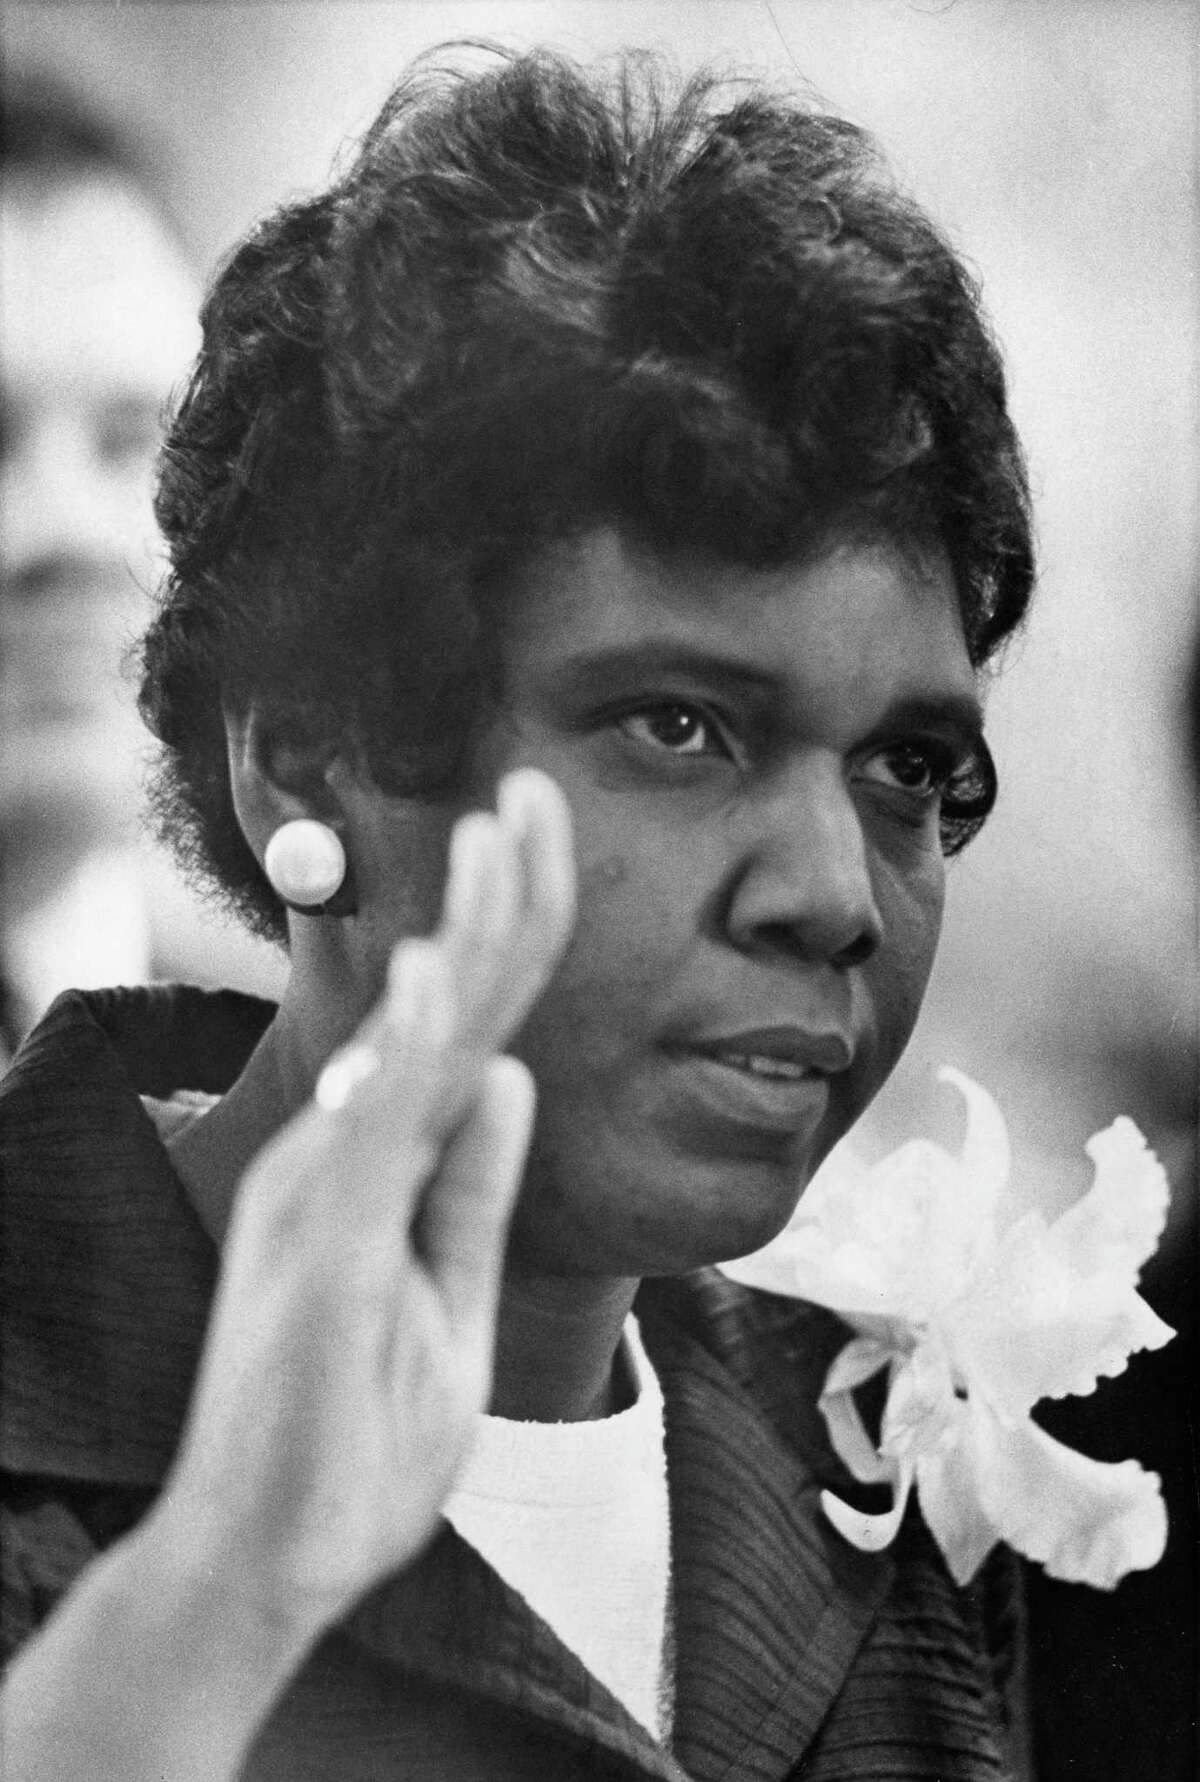 01/10/1967 - Barbara Jordan takes oath to become first African American Texas state senator since 1883 and the first black woman to serve in the Texas Senate.